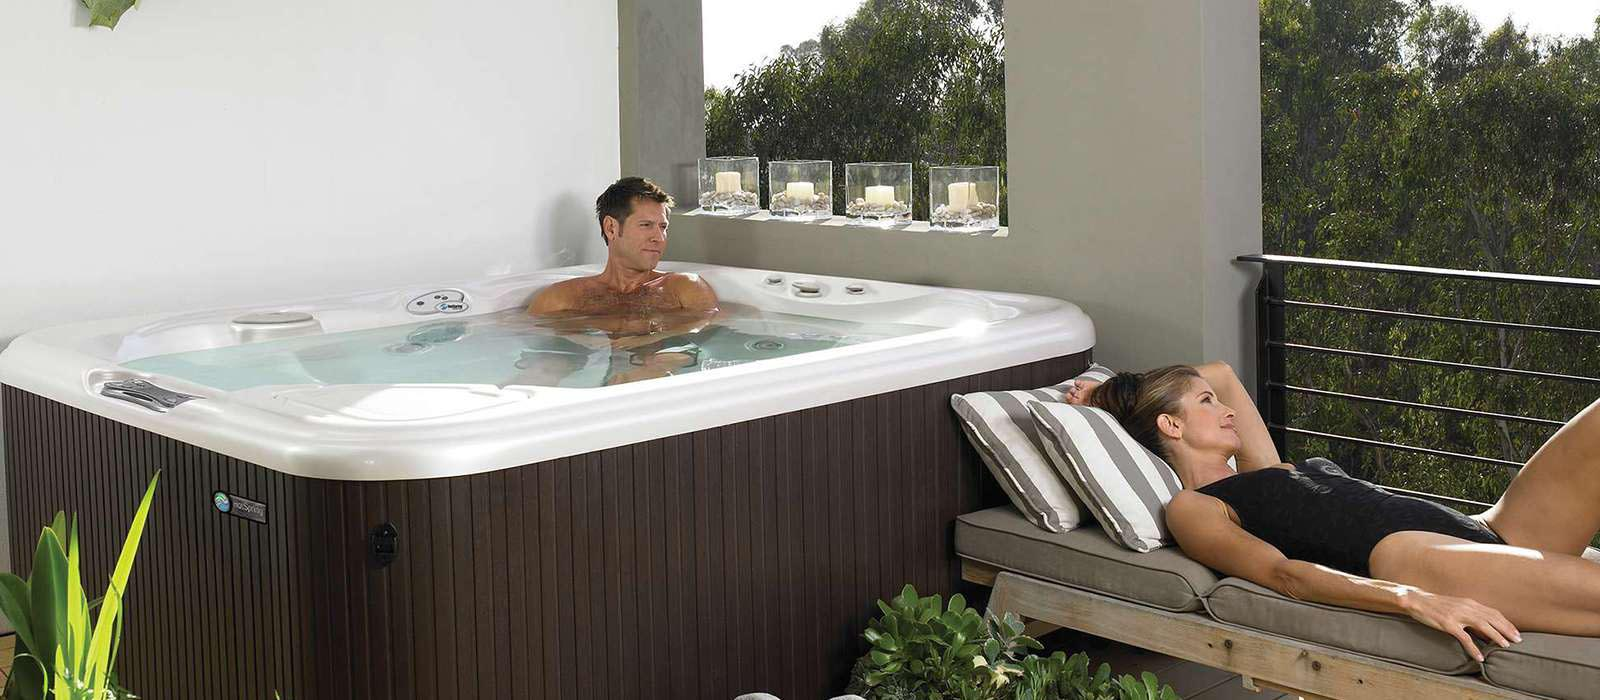 Hot Tub Parts Backyard : Pin Patio Lawn Garden Pools Hot Tubs Supplies Parts Accessories Pumps